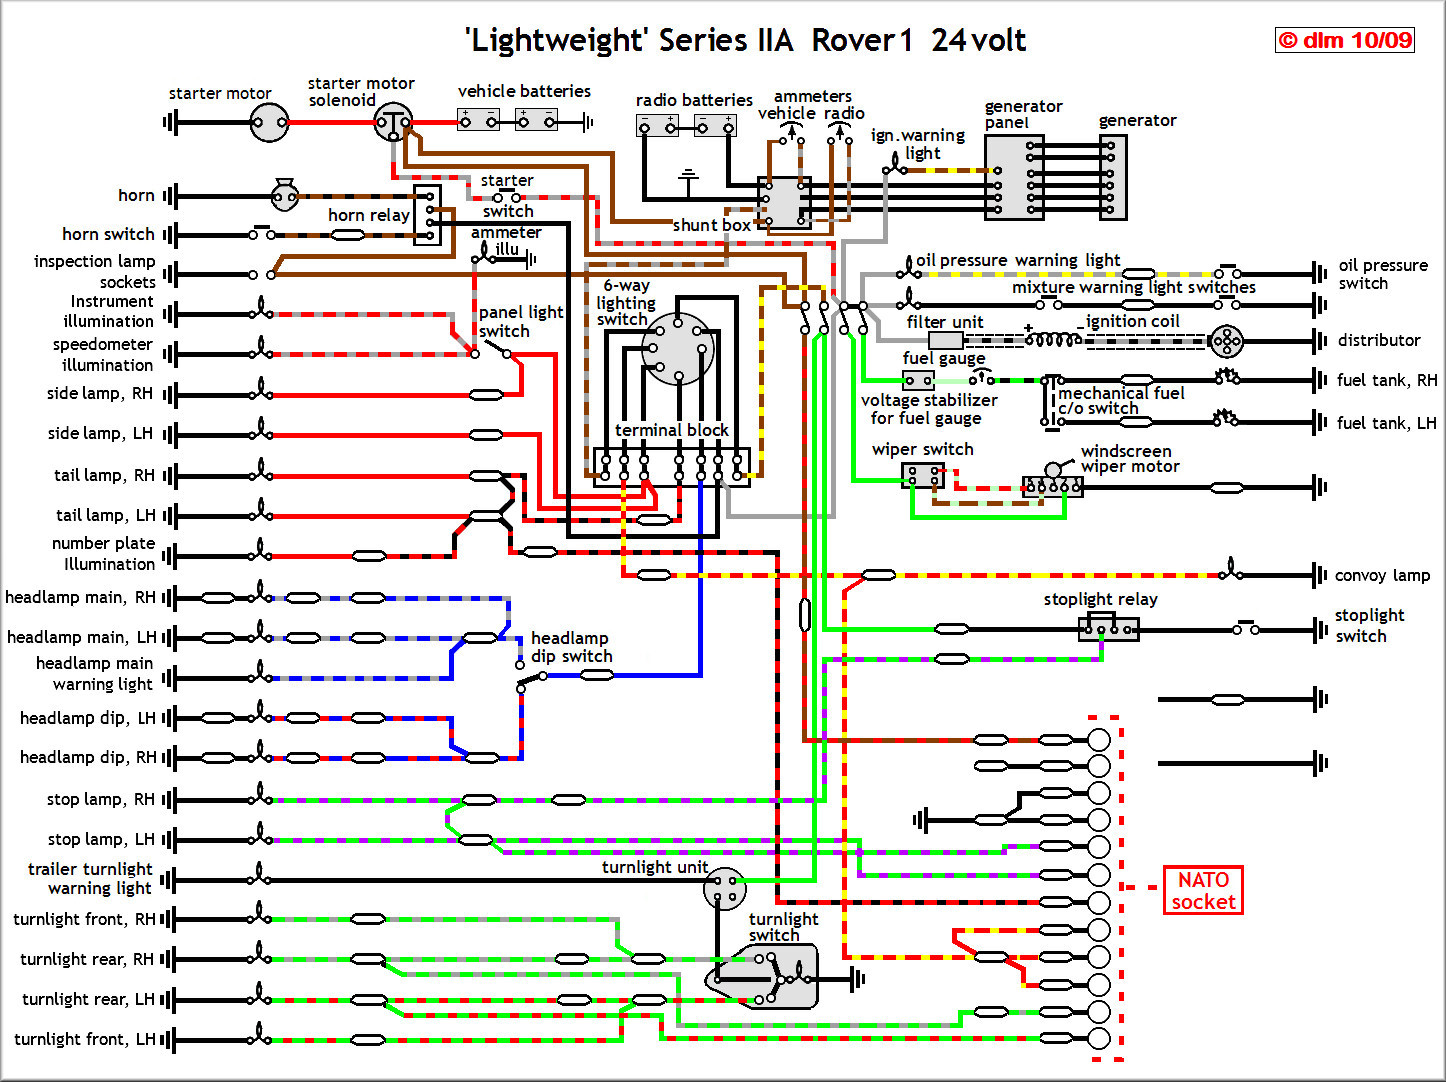 Land Rover Lr3 Trailer Wiring Diagram Just Data Vehicle Series 3 Military List Of Schematic Freelander Fuil Pump Diagrams